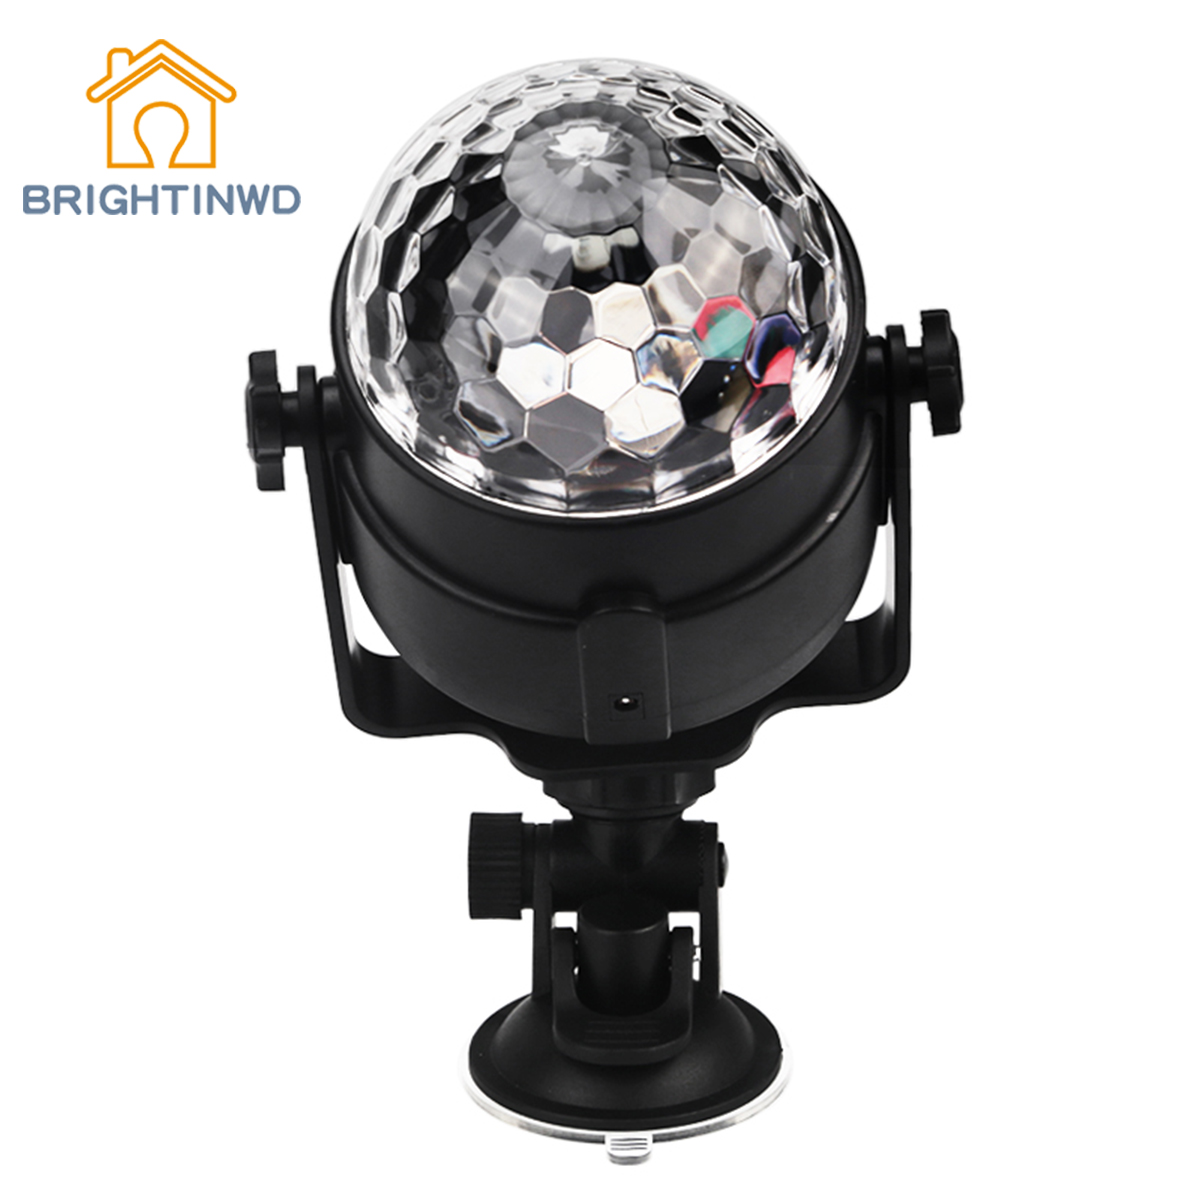 BRIGHTINWD Sound Activated Projector Party Disco Club DJ Light Mini RGB LED Crystal Magic Ball Stage Effect Lighting Lamp Bulb